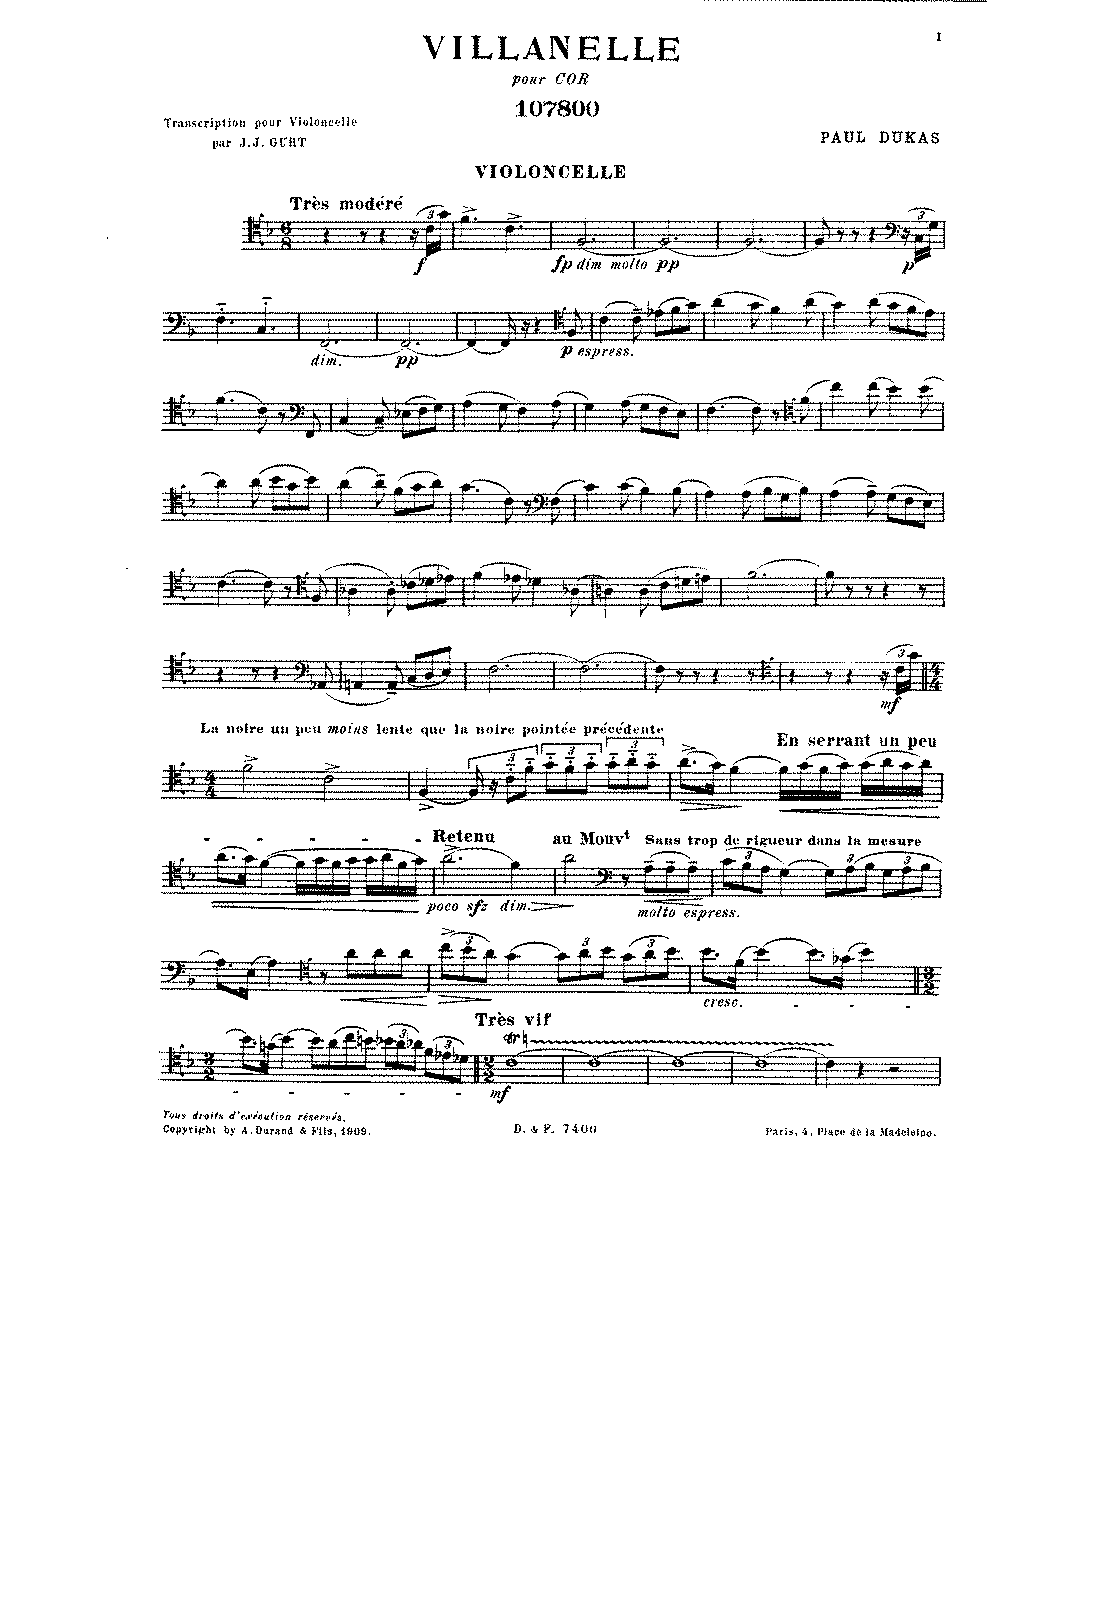 PMLP07492-Dukas - Villanelle for Cello (or Horn) and Orch (Gurt) cello.pdf